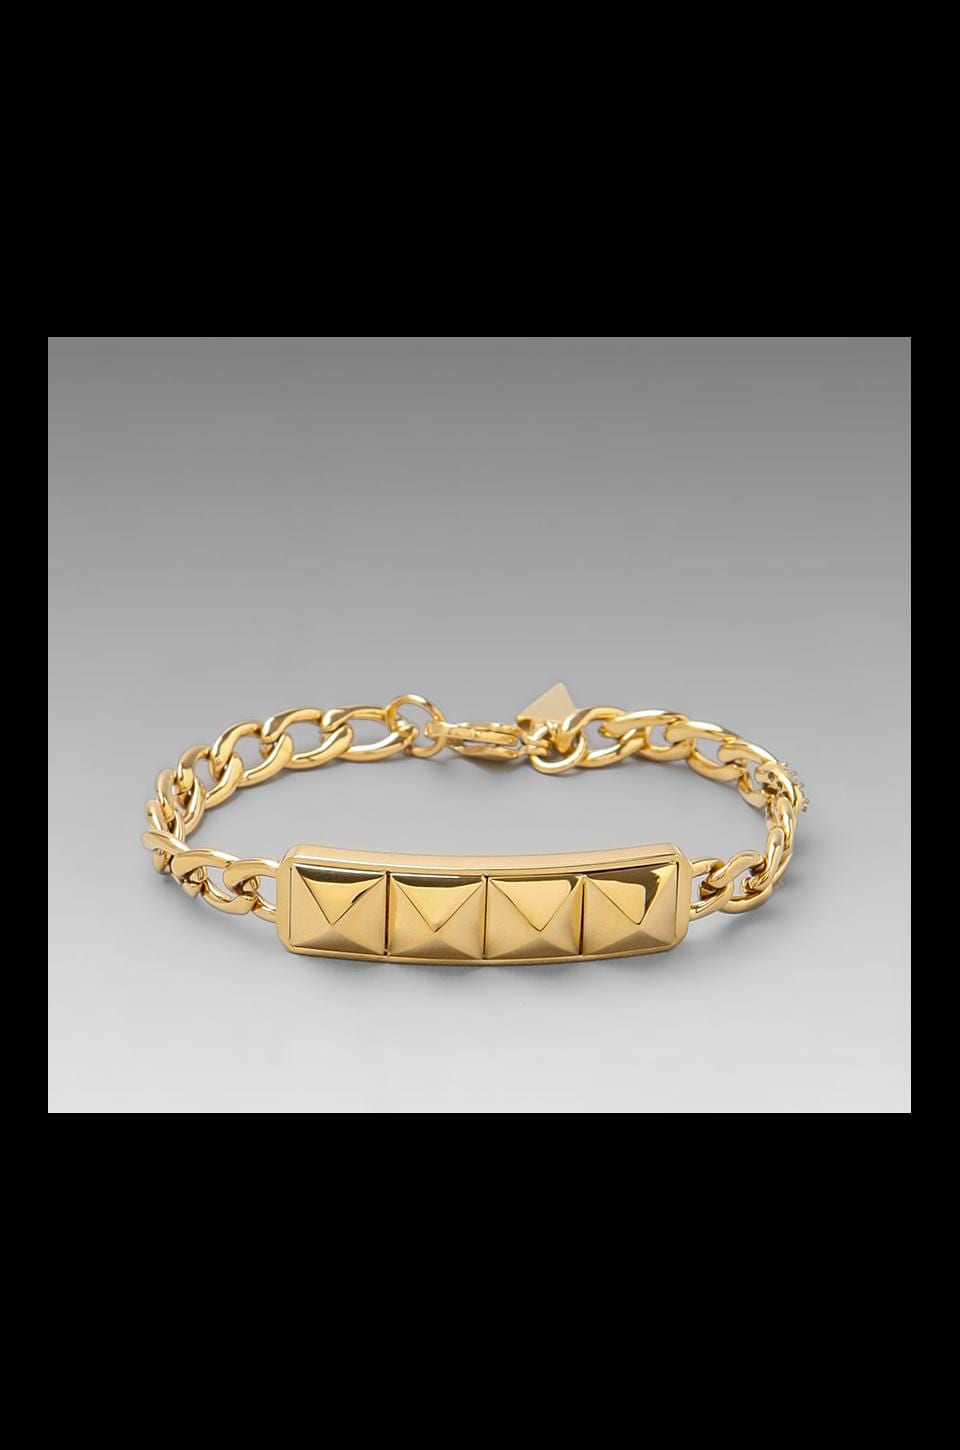 Rebecca Minkoff Studded ID Plate Bracelet in Gold